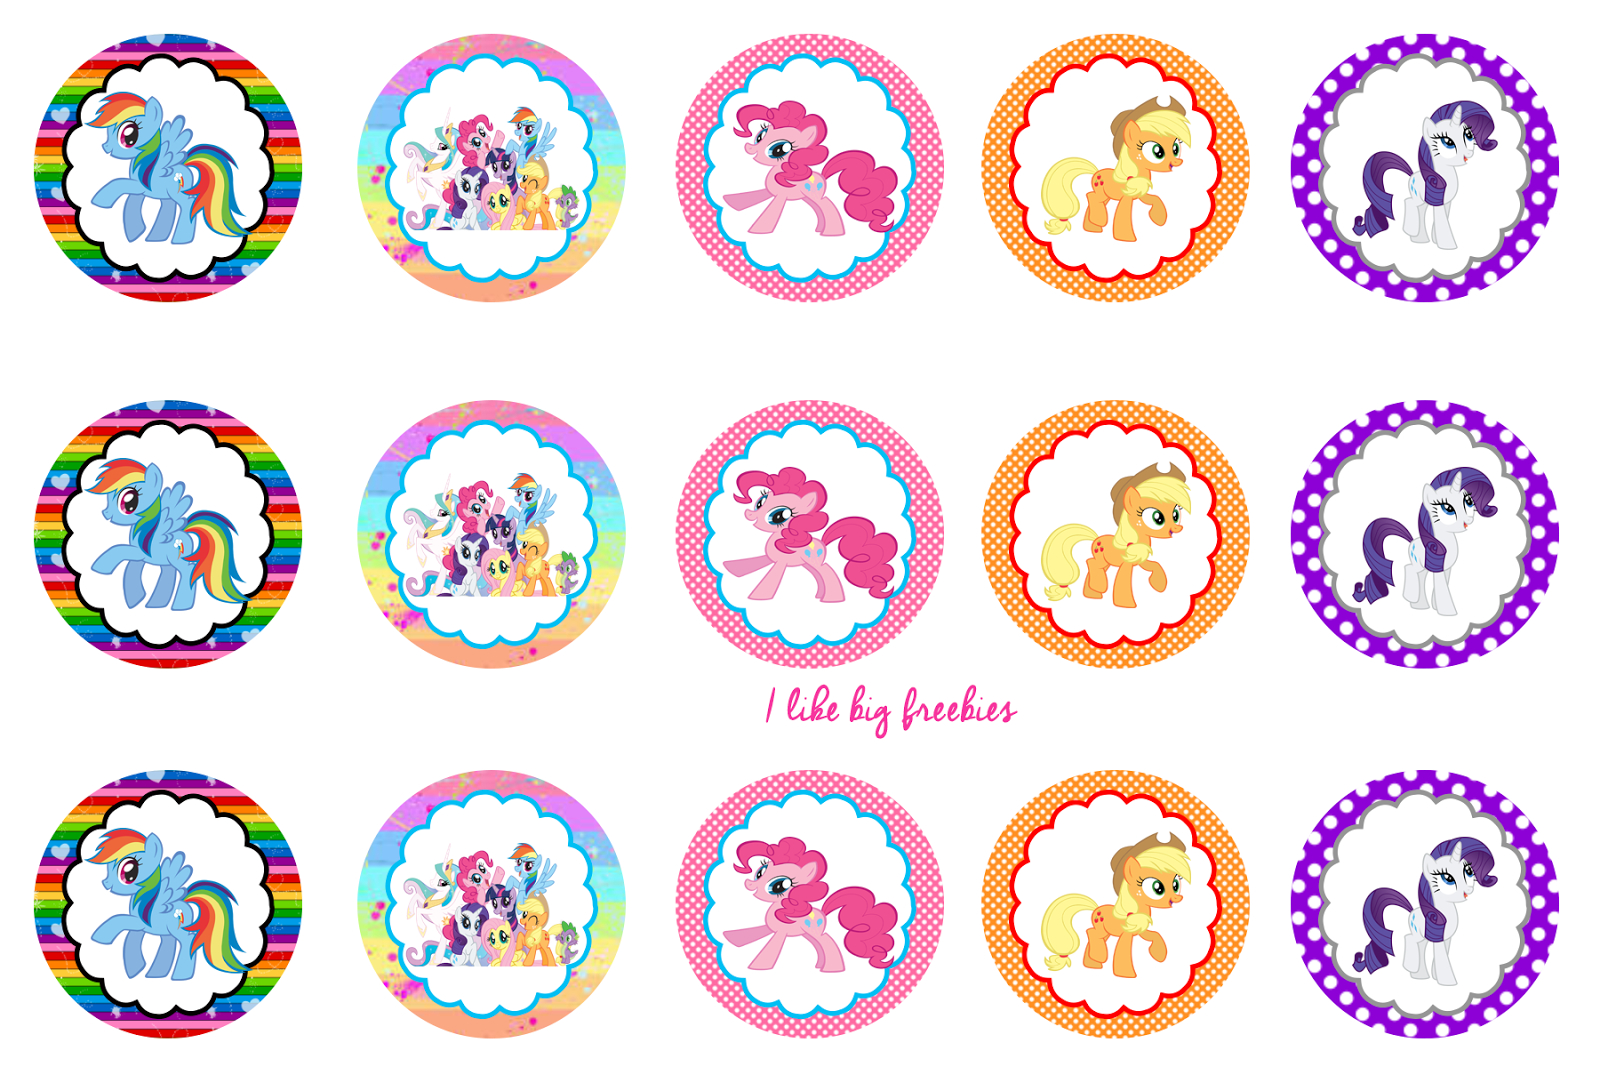 Free Bottle Cap Printables | My Little Pony Cupcake Ideas My Little - Free Printable My Little Pony Cupcake Toppers